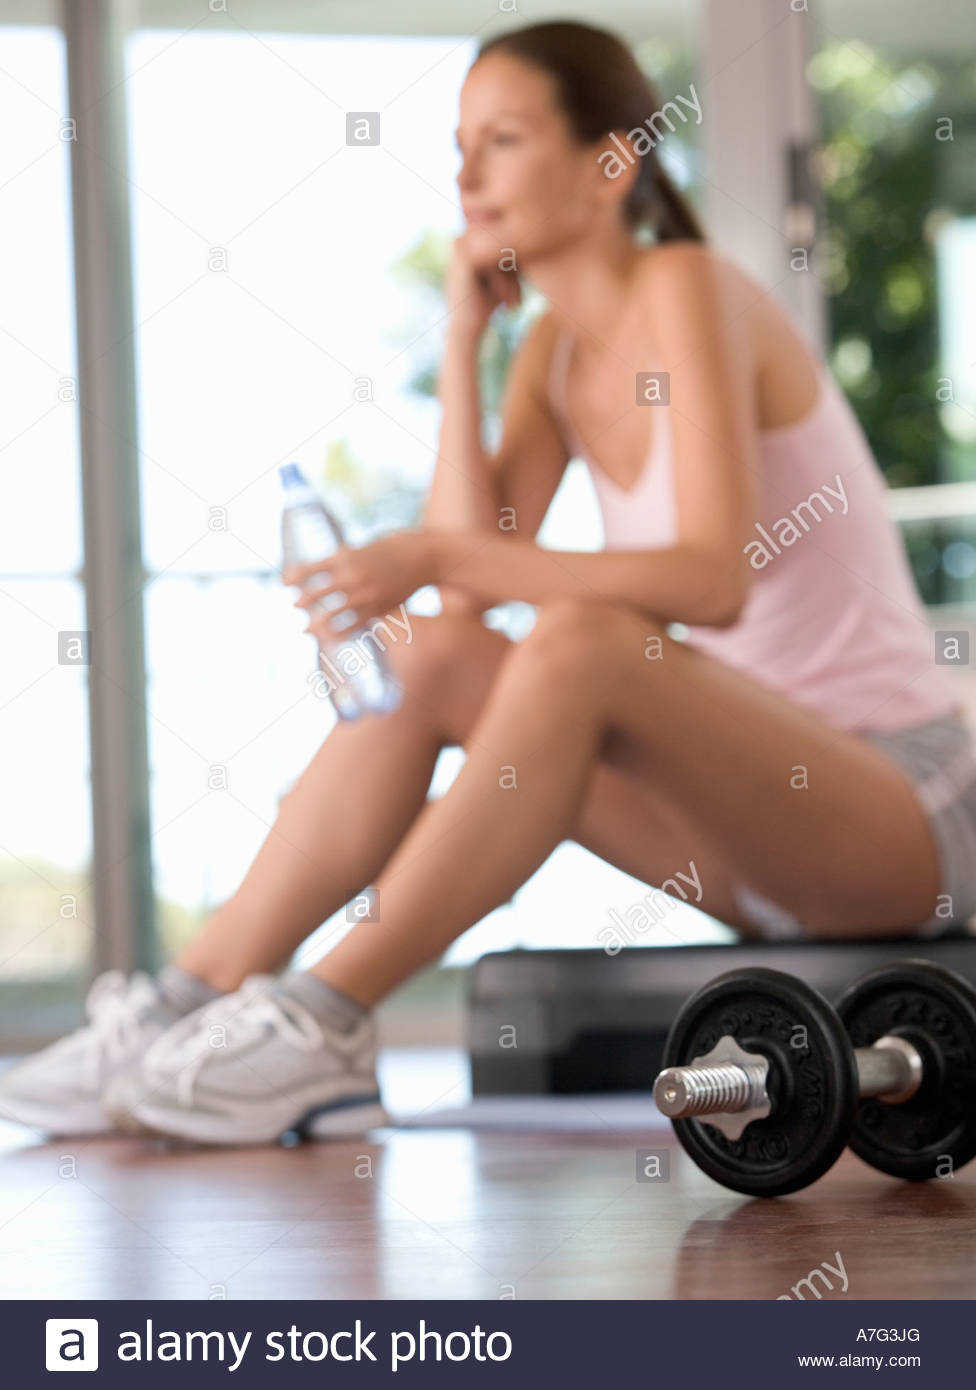 A woman sitting in a gym - Stock Image